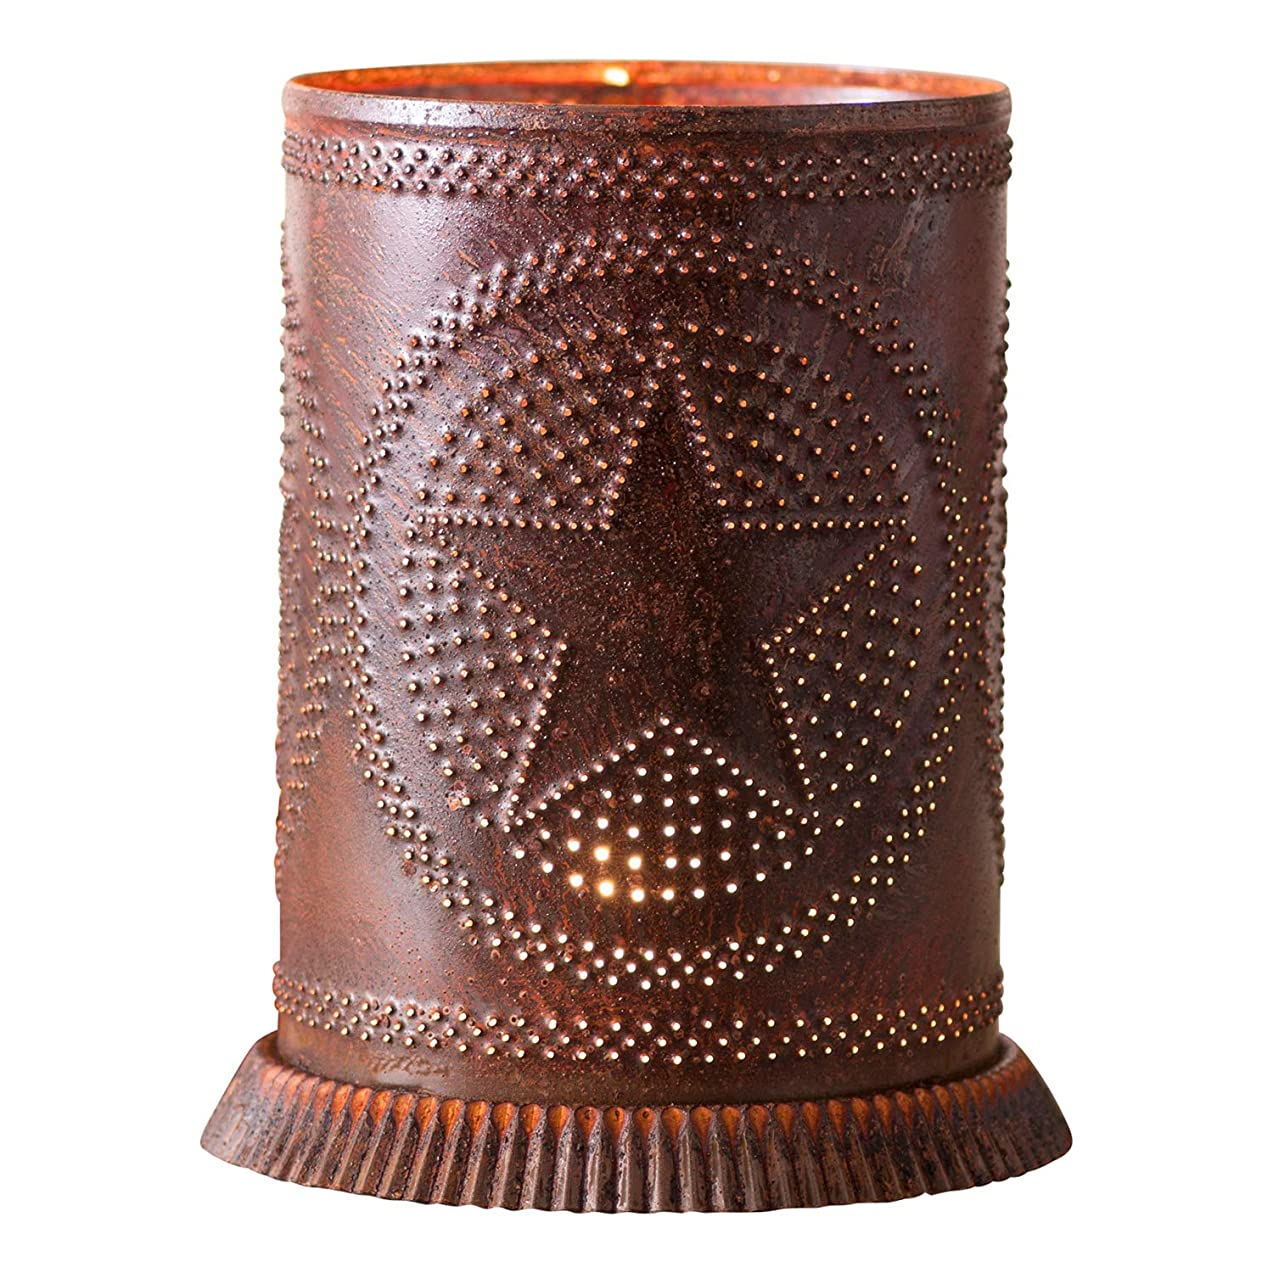 Irvin's Country Tinware Candle Warmer with Regular Star in Rustic Tin